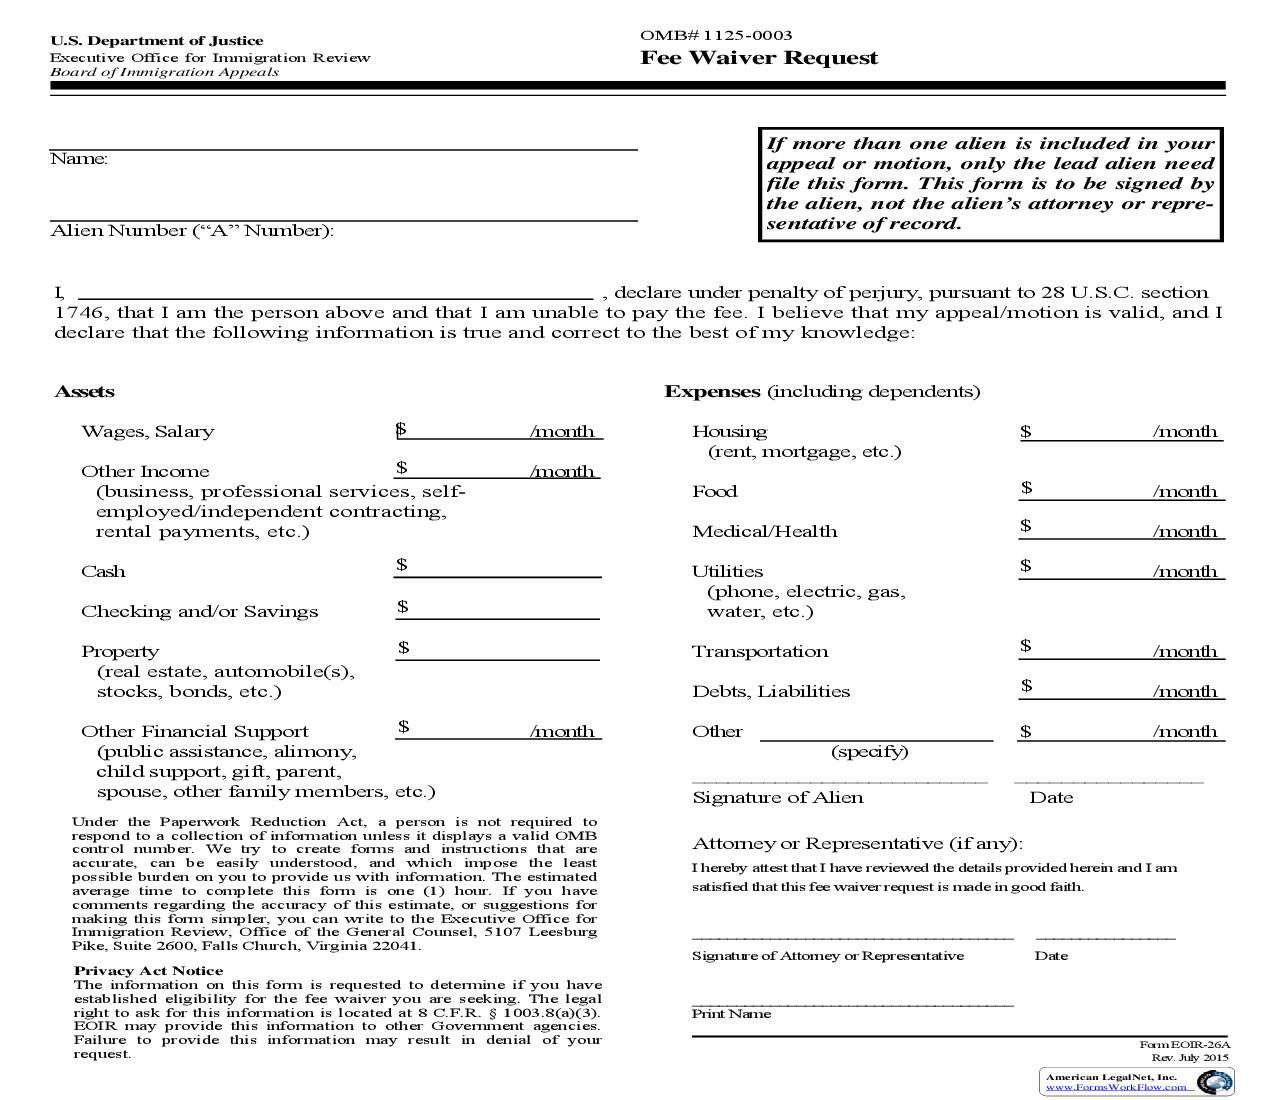 Fee Waiver Request {EOIR-26A} | Pdf Fpdf Doc Docx | Official Federal Forms